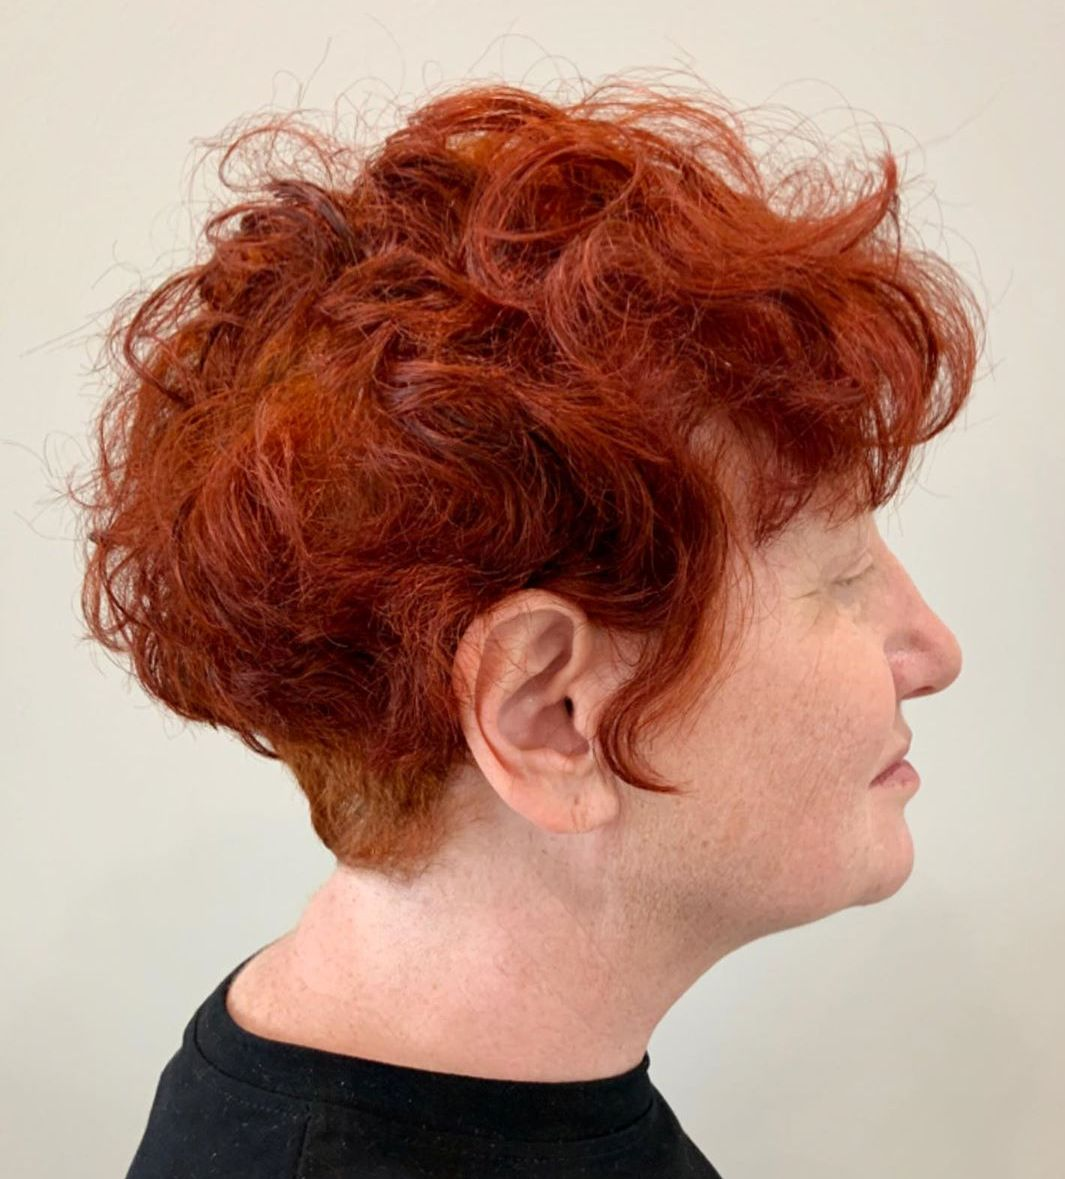 Short Curly Scrunched Hairstyle